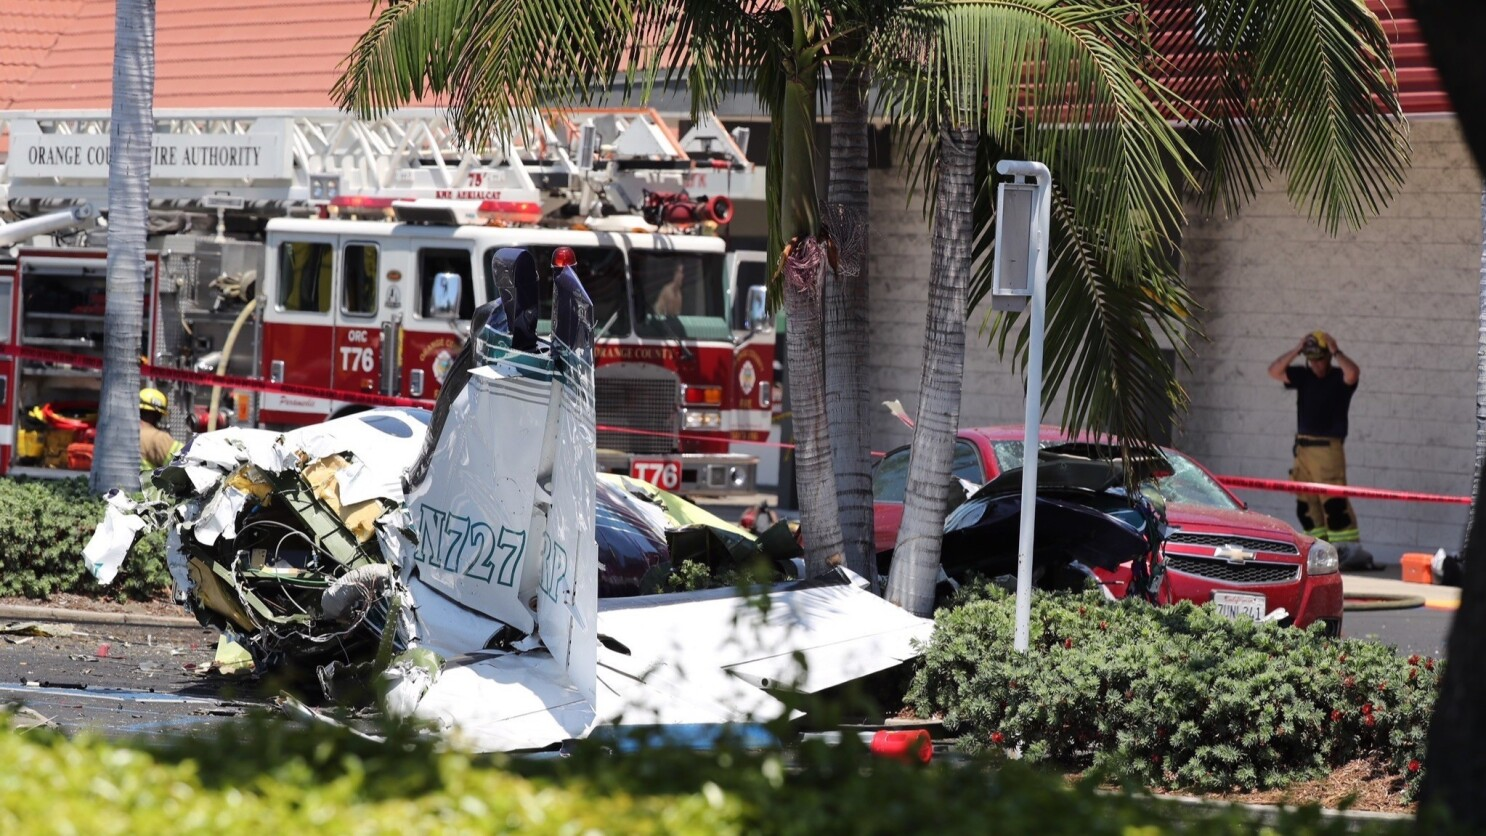 It was so heartbreaking': Small plane crashes in Santa Ana